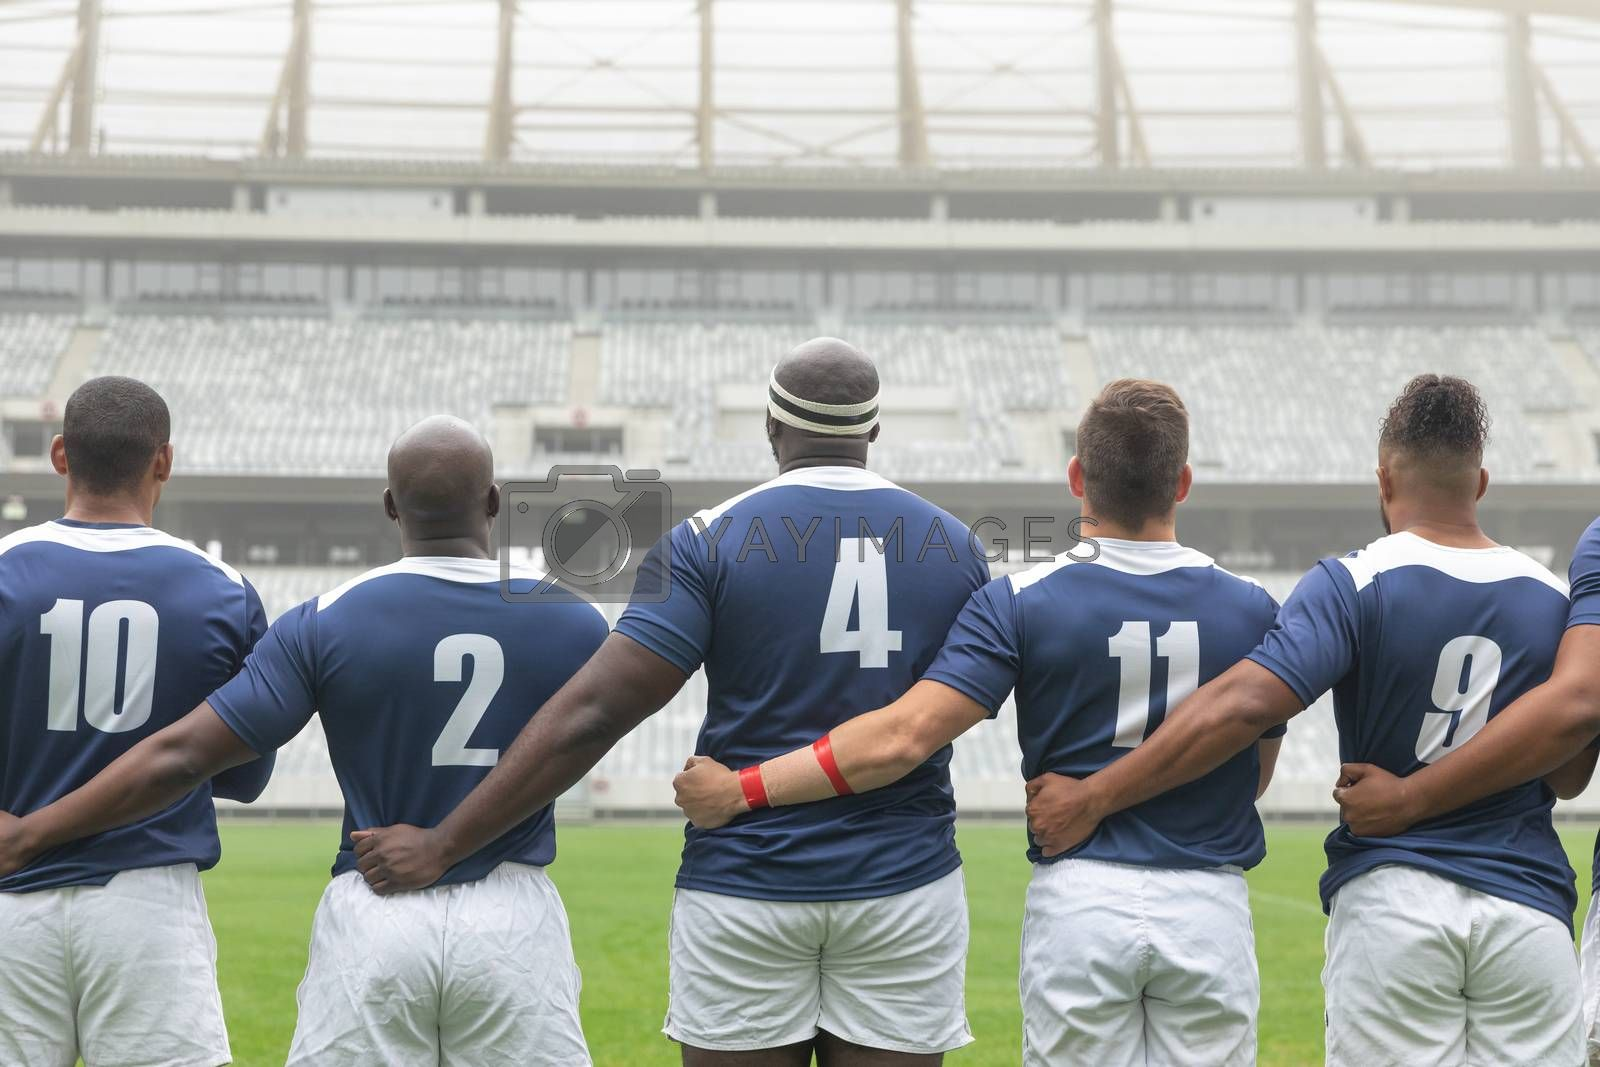 Rear view of group of diverse male rugby players taking pledge together in stadium